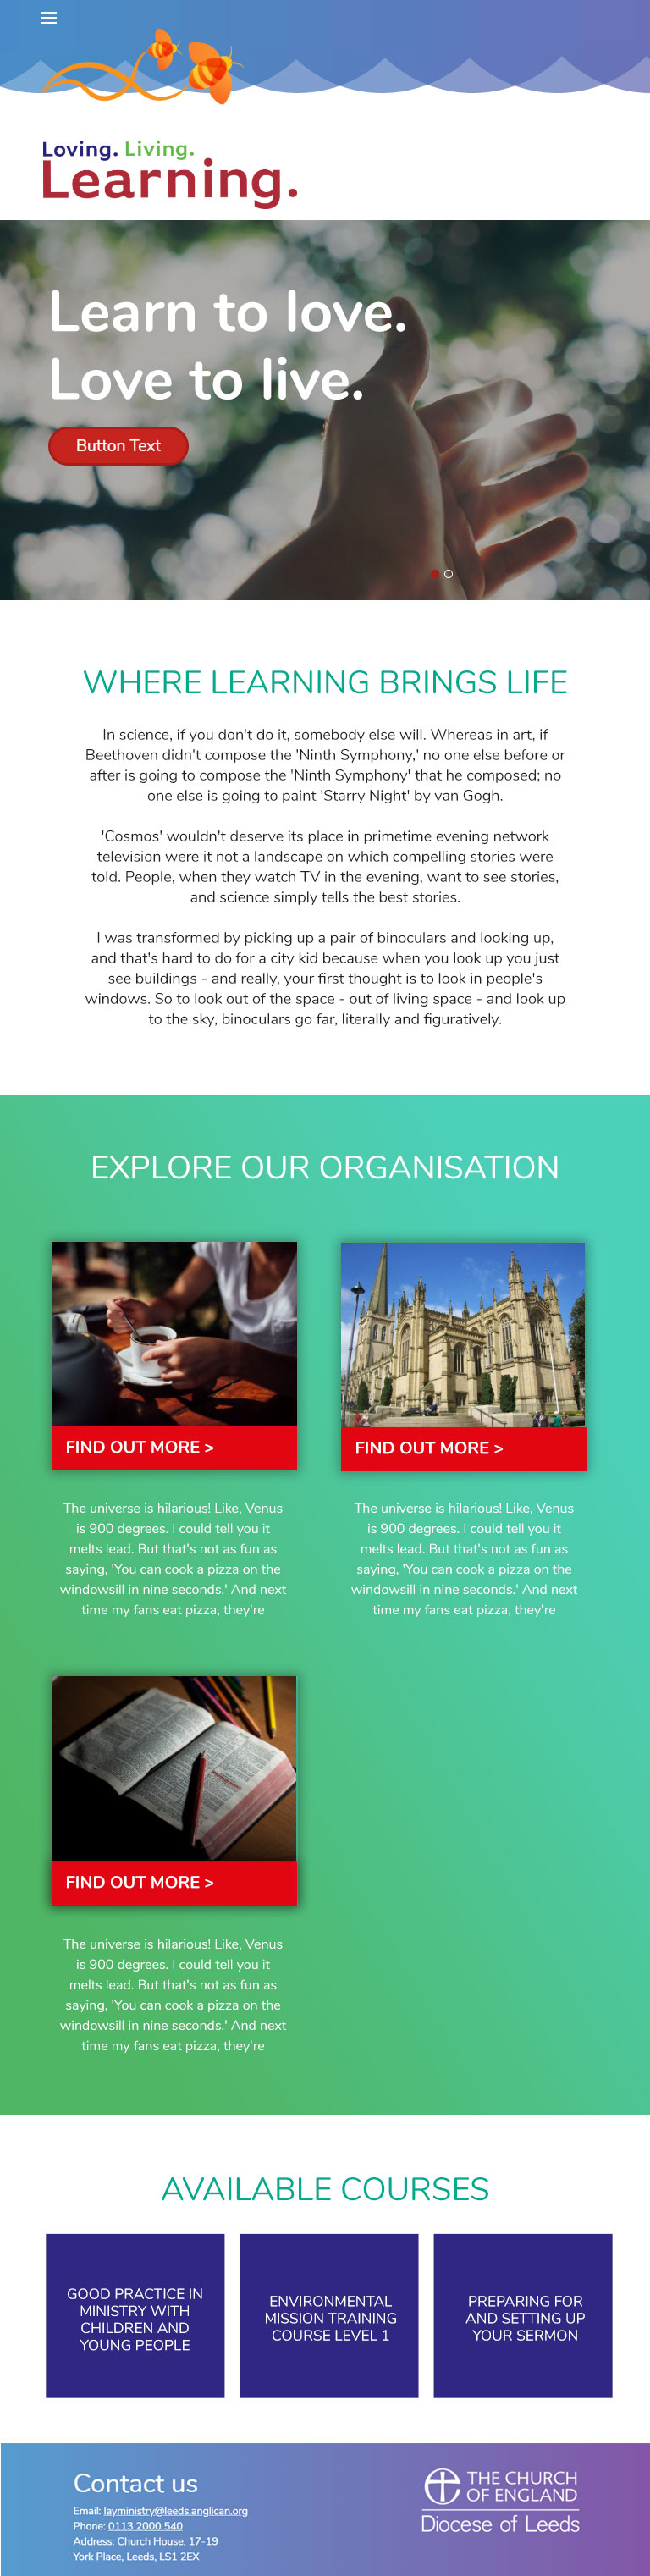 Brand It - Leeds Diocese - Tablet